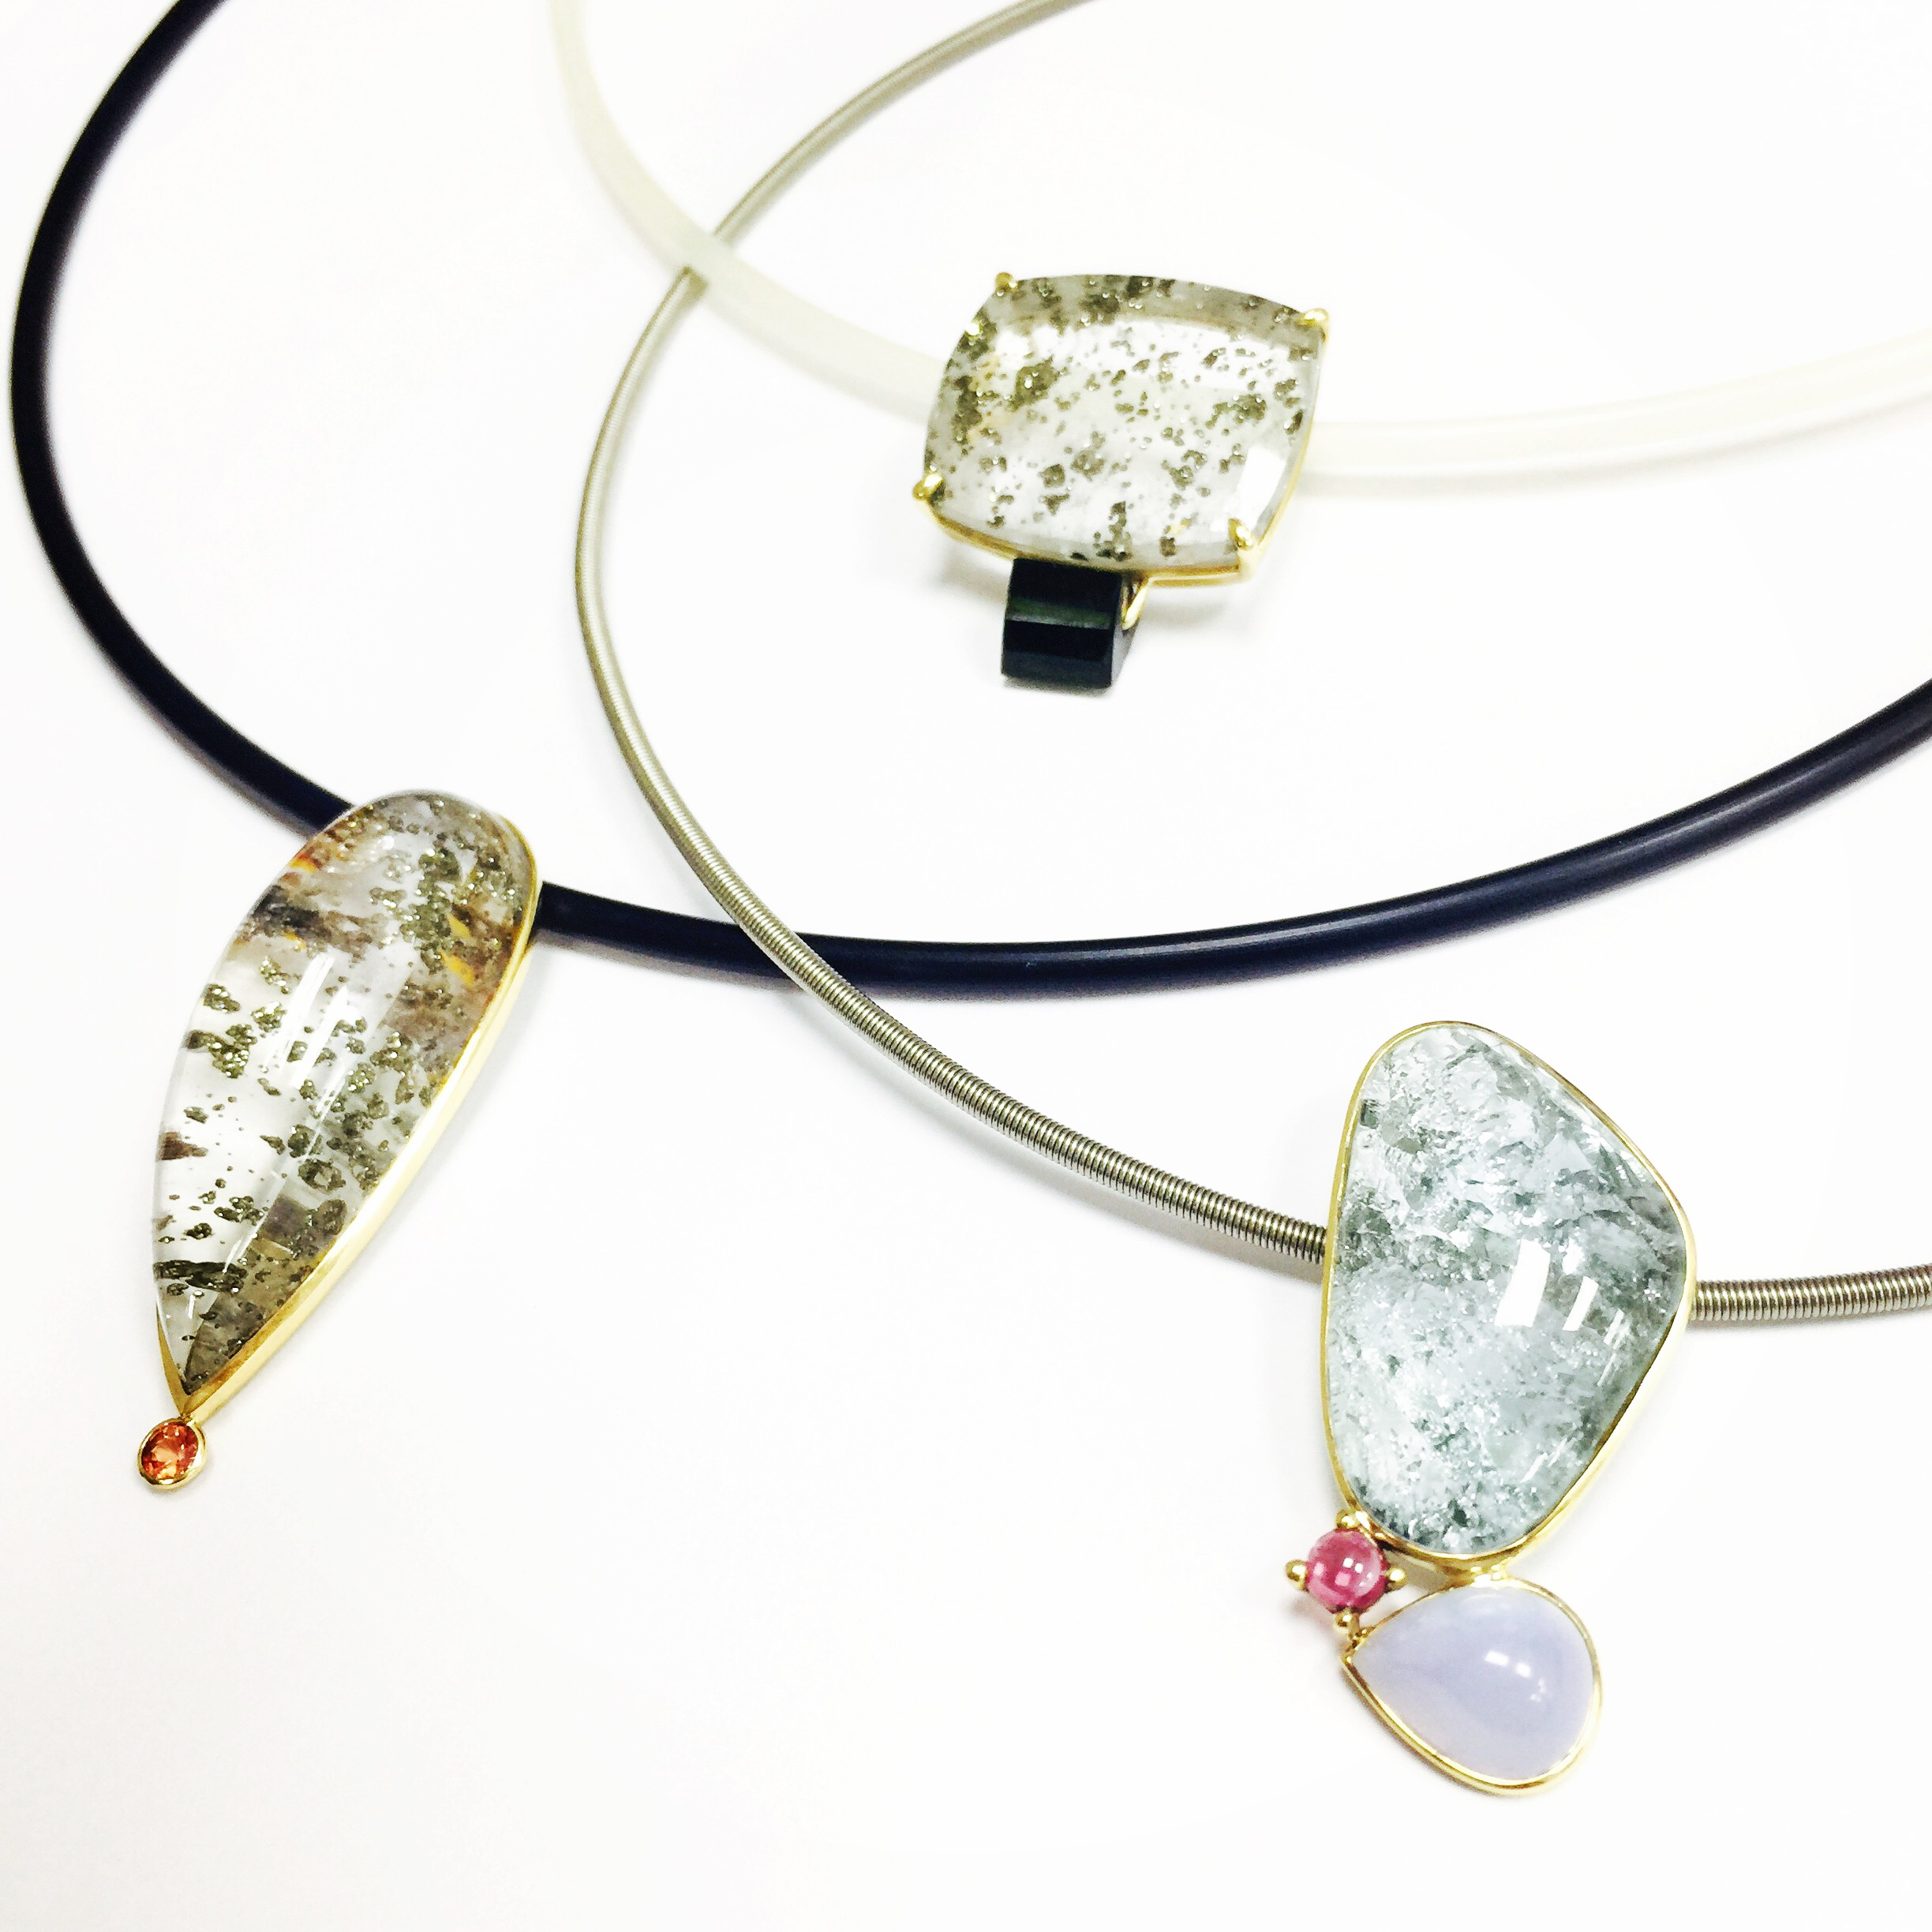 COOLING PENDANTS:Pendant of Natural Phantom Quartz with Gold Iron Pyrite AND PADPARADSCHA SAPPHIRE/ pendant of BLUE TOPAZ, CHALCEDONY AND RUBY/Pendant of Natural Phantom Quartz with Iron Pyrite WITH TOURMALINE